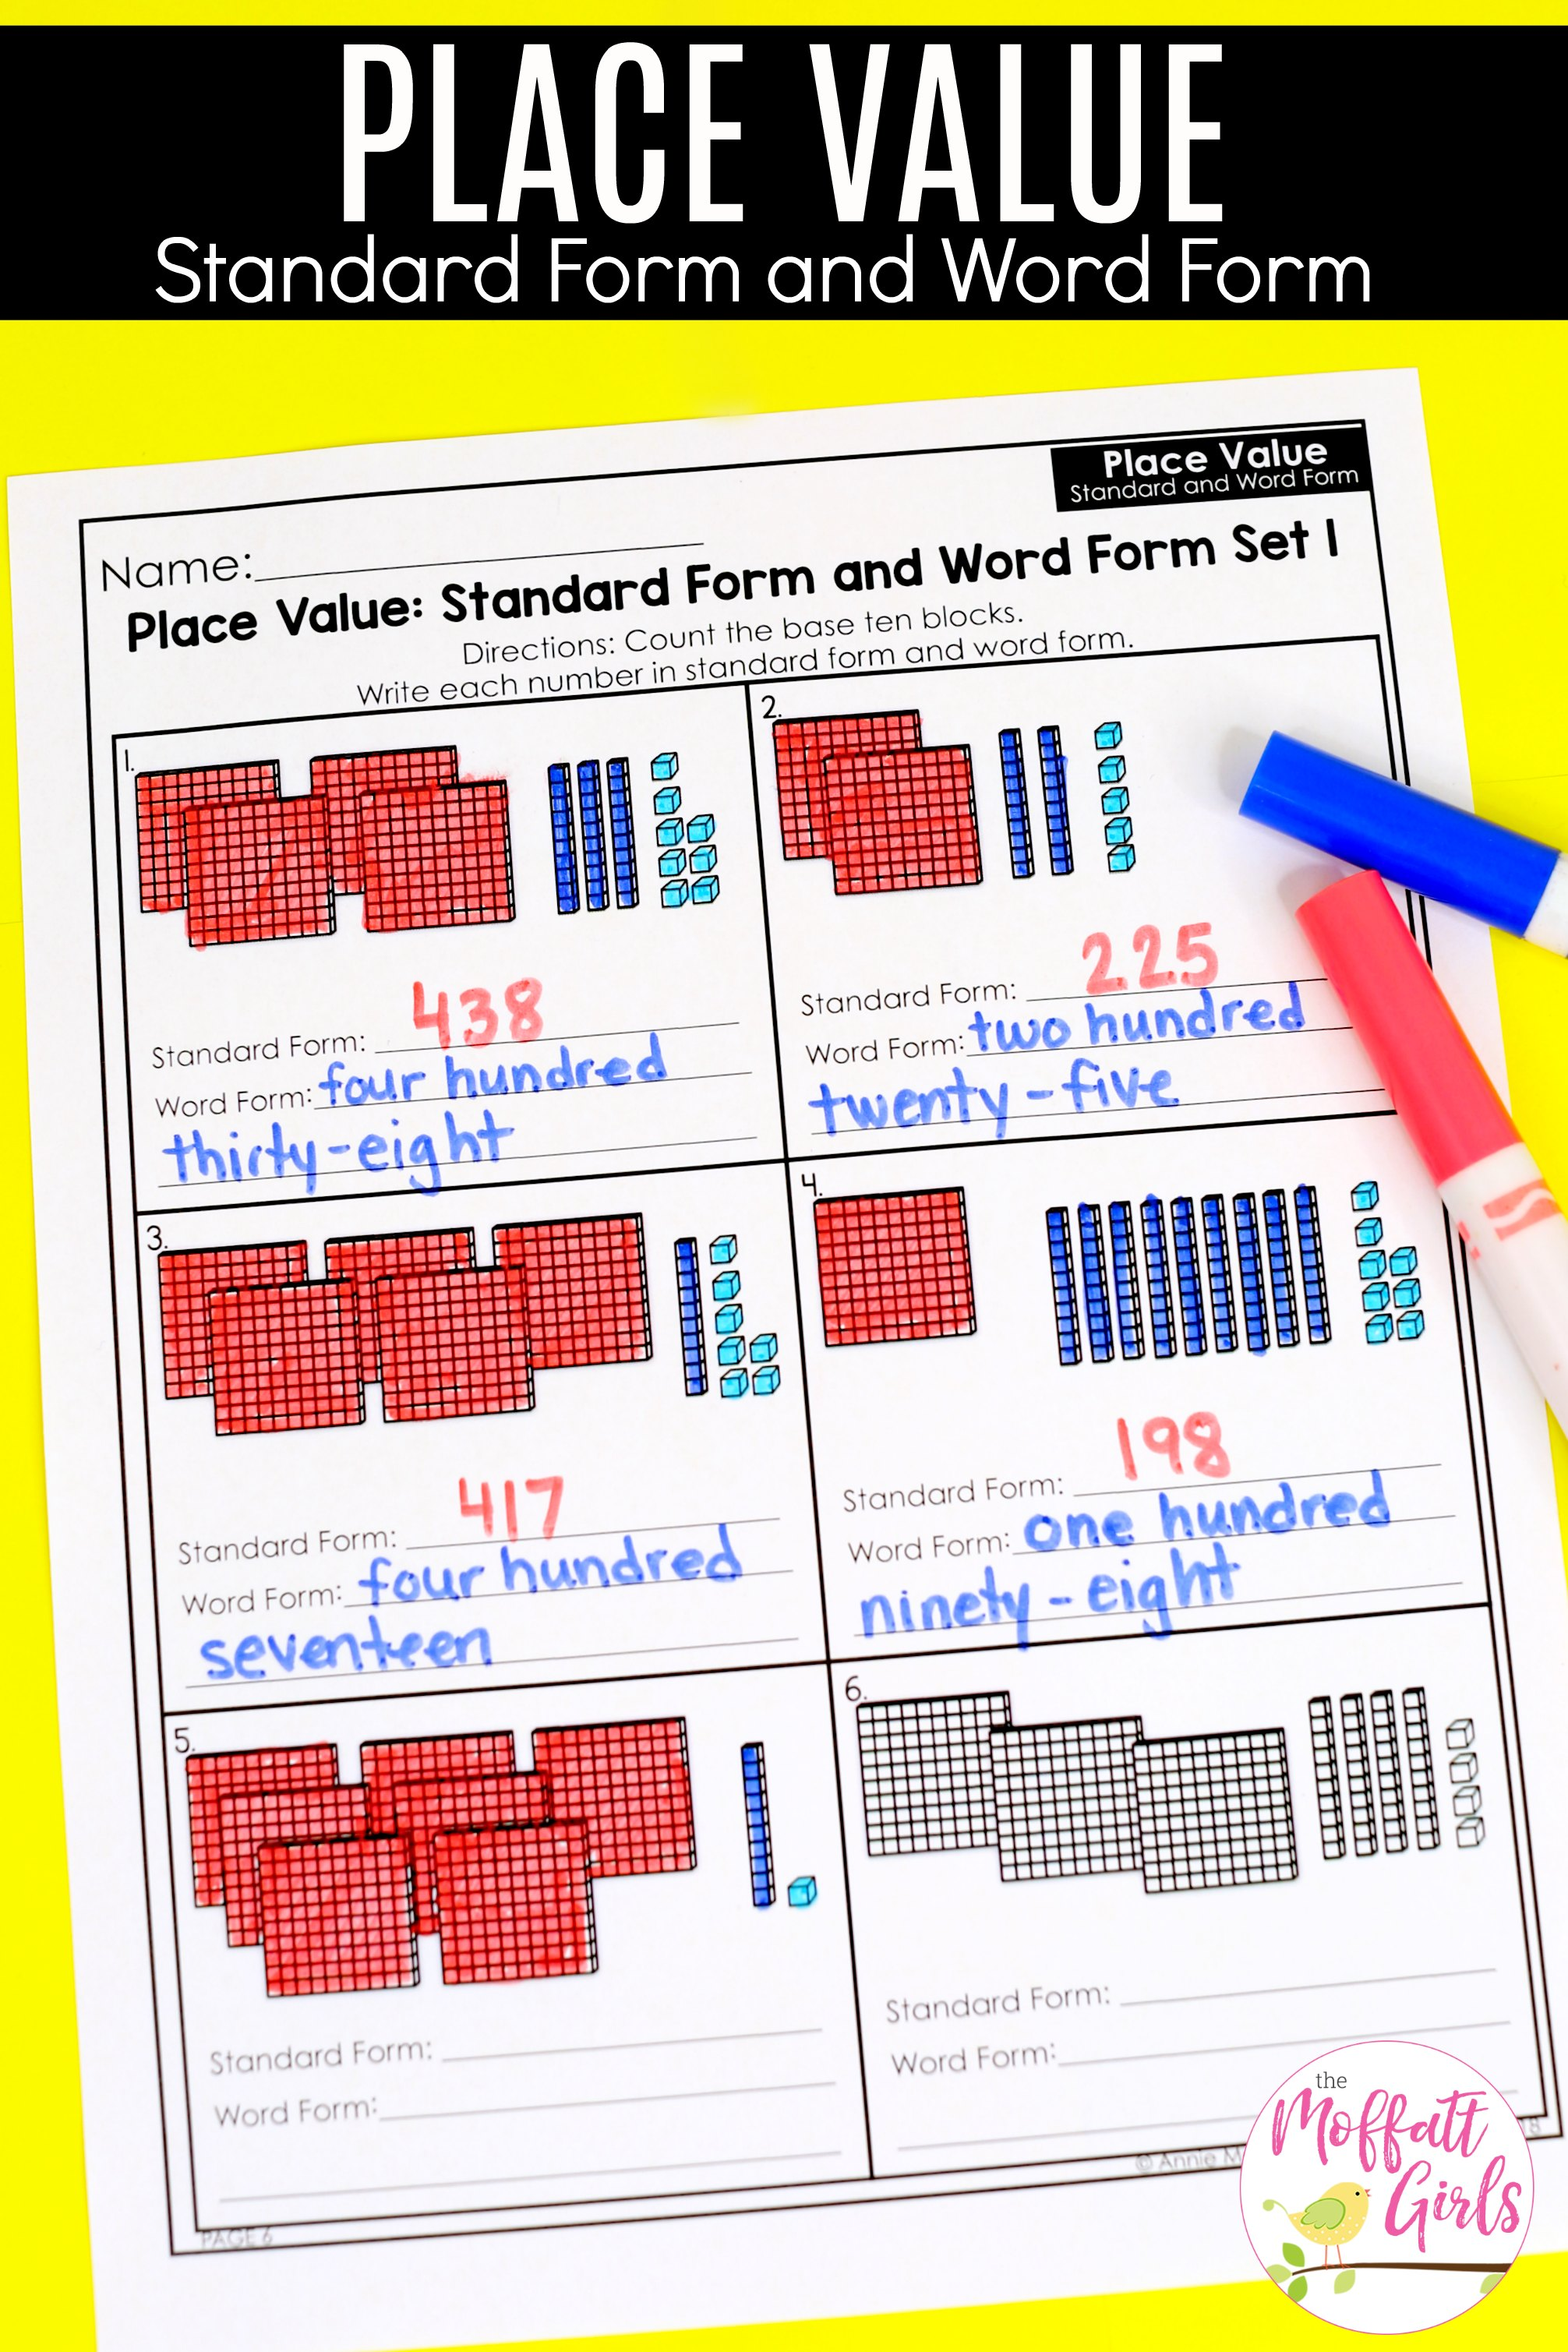 Place Value Standard Form And Word Form